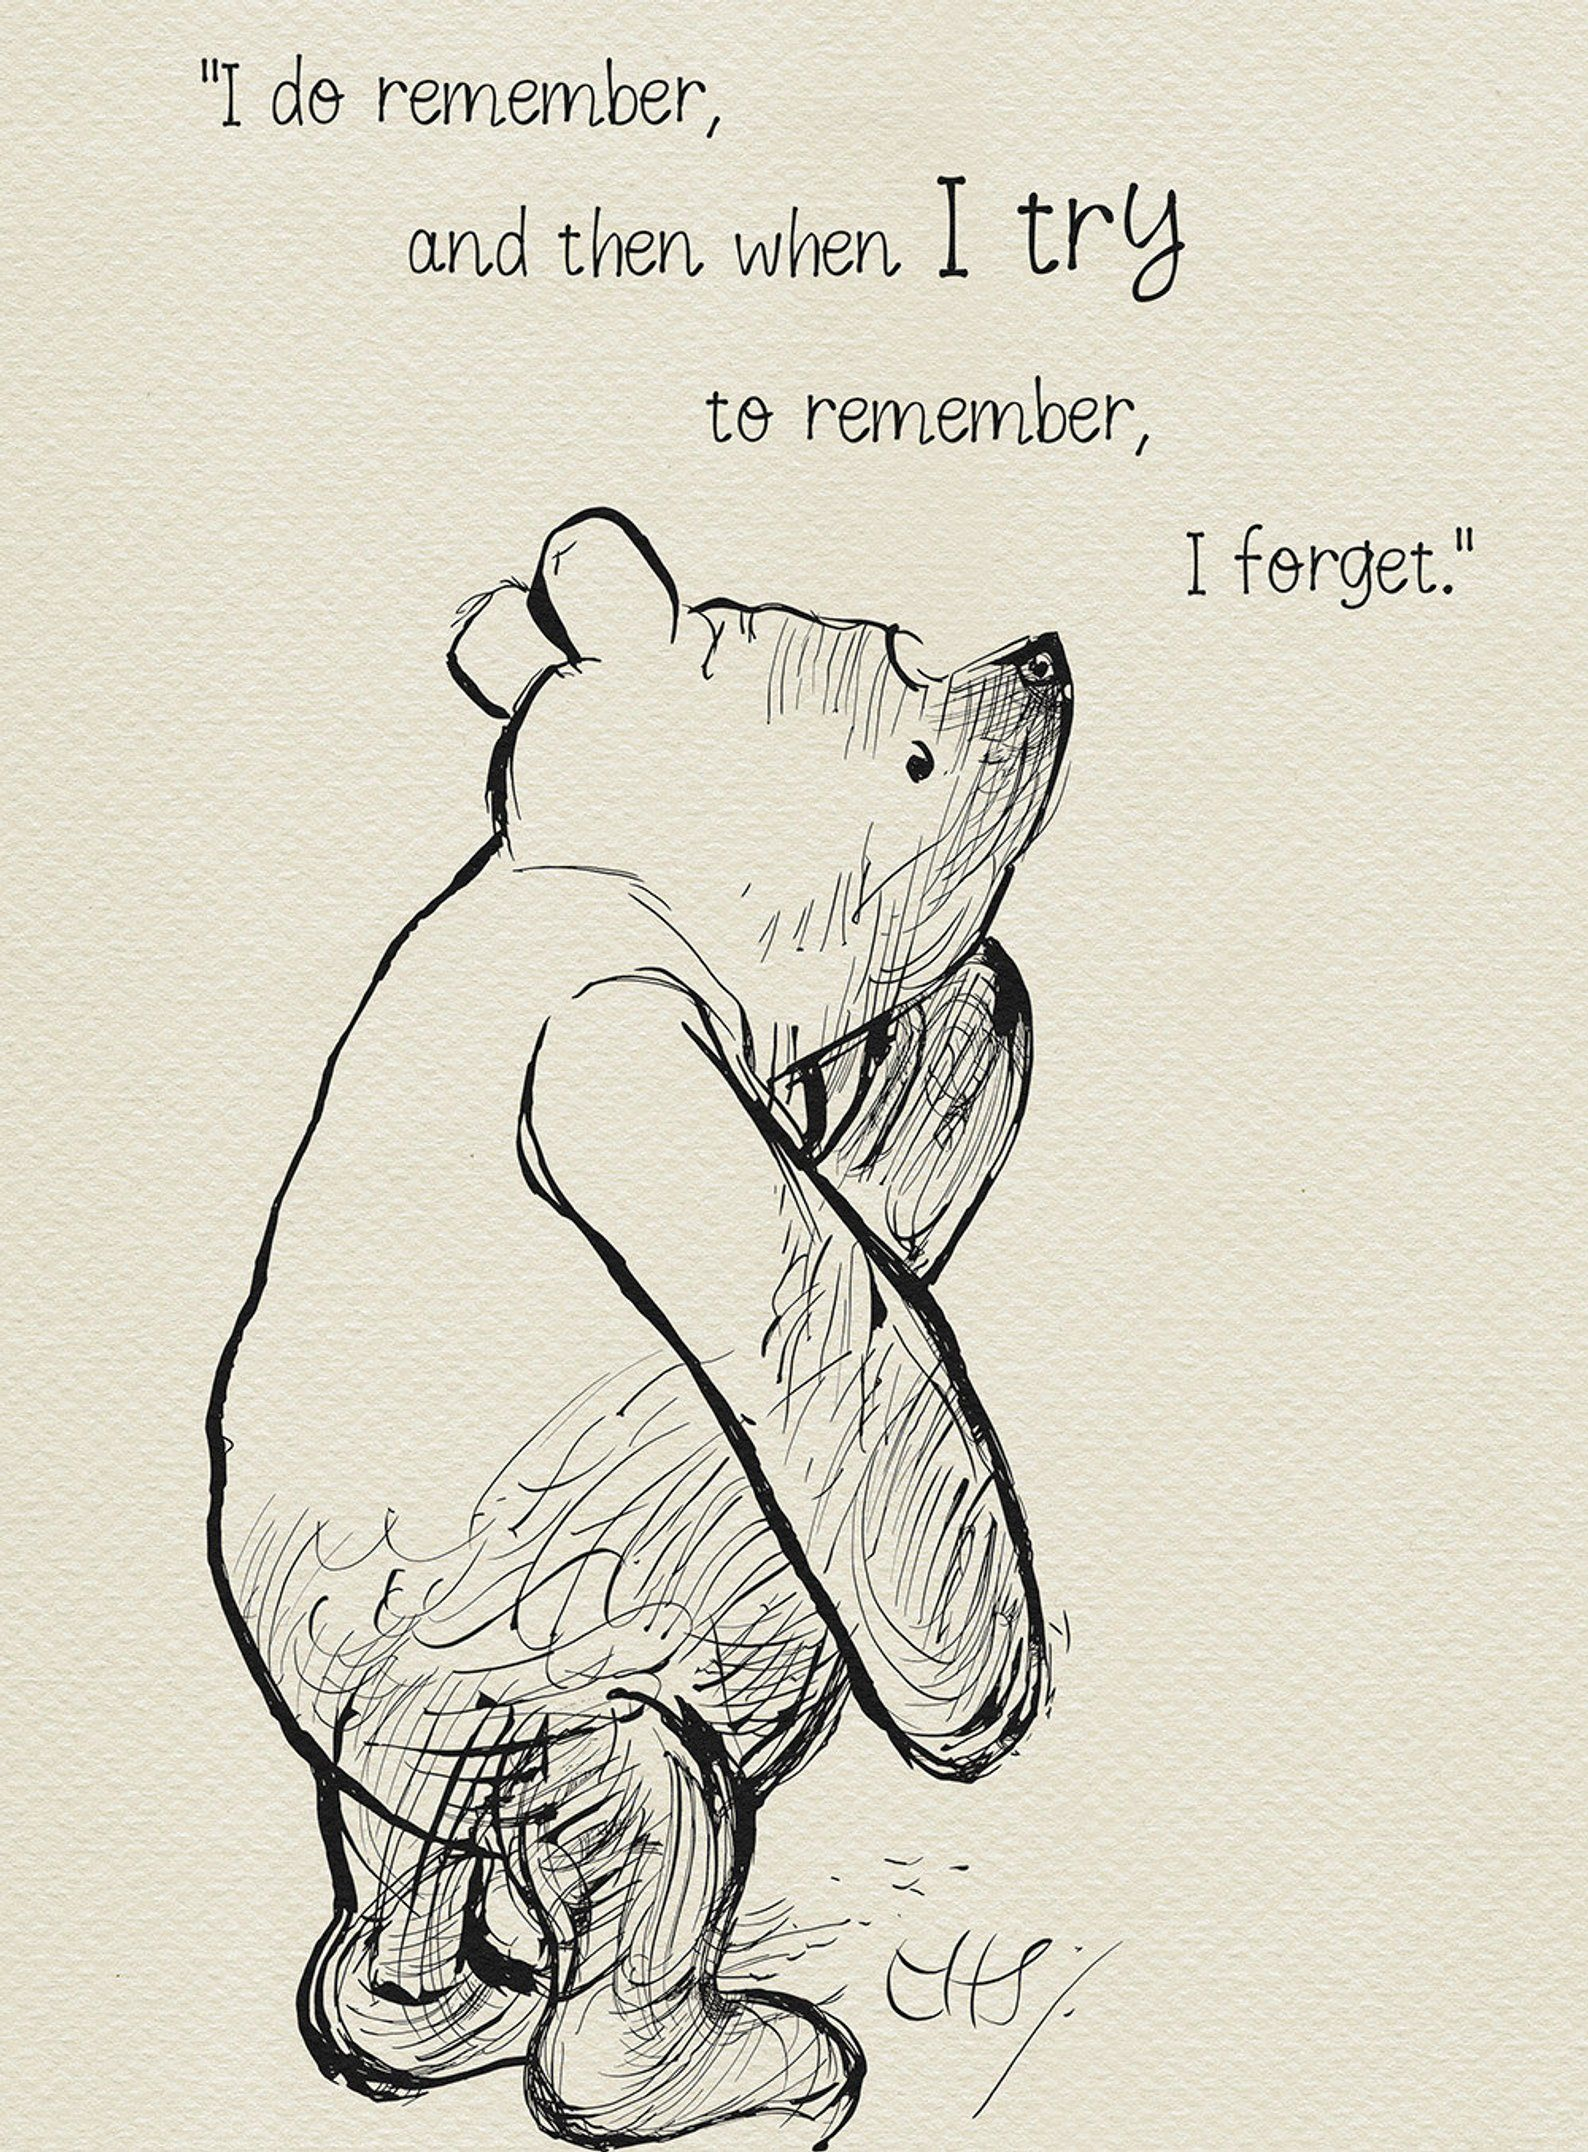 I do remember and then when I try to remember I forget | Etsy